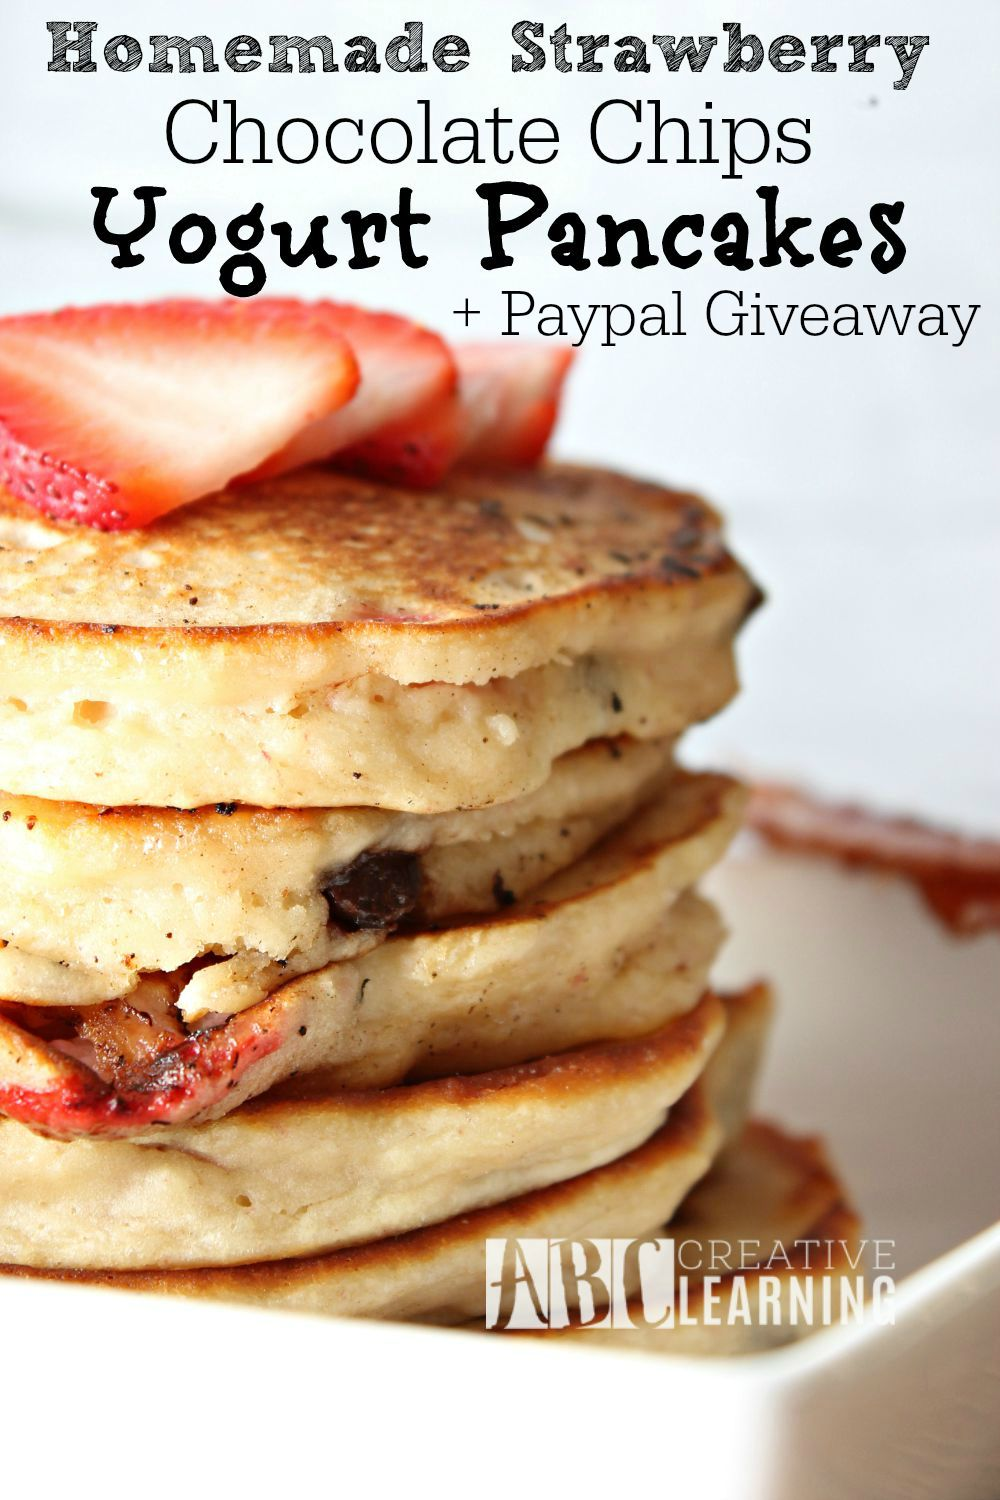 Homemade Strawberry Chocolate Chips Yogurt Pancakes plus giveaway